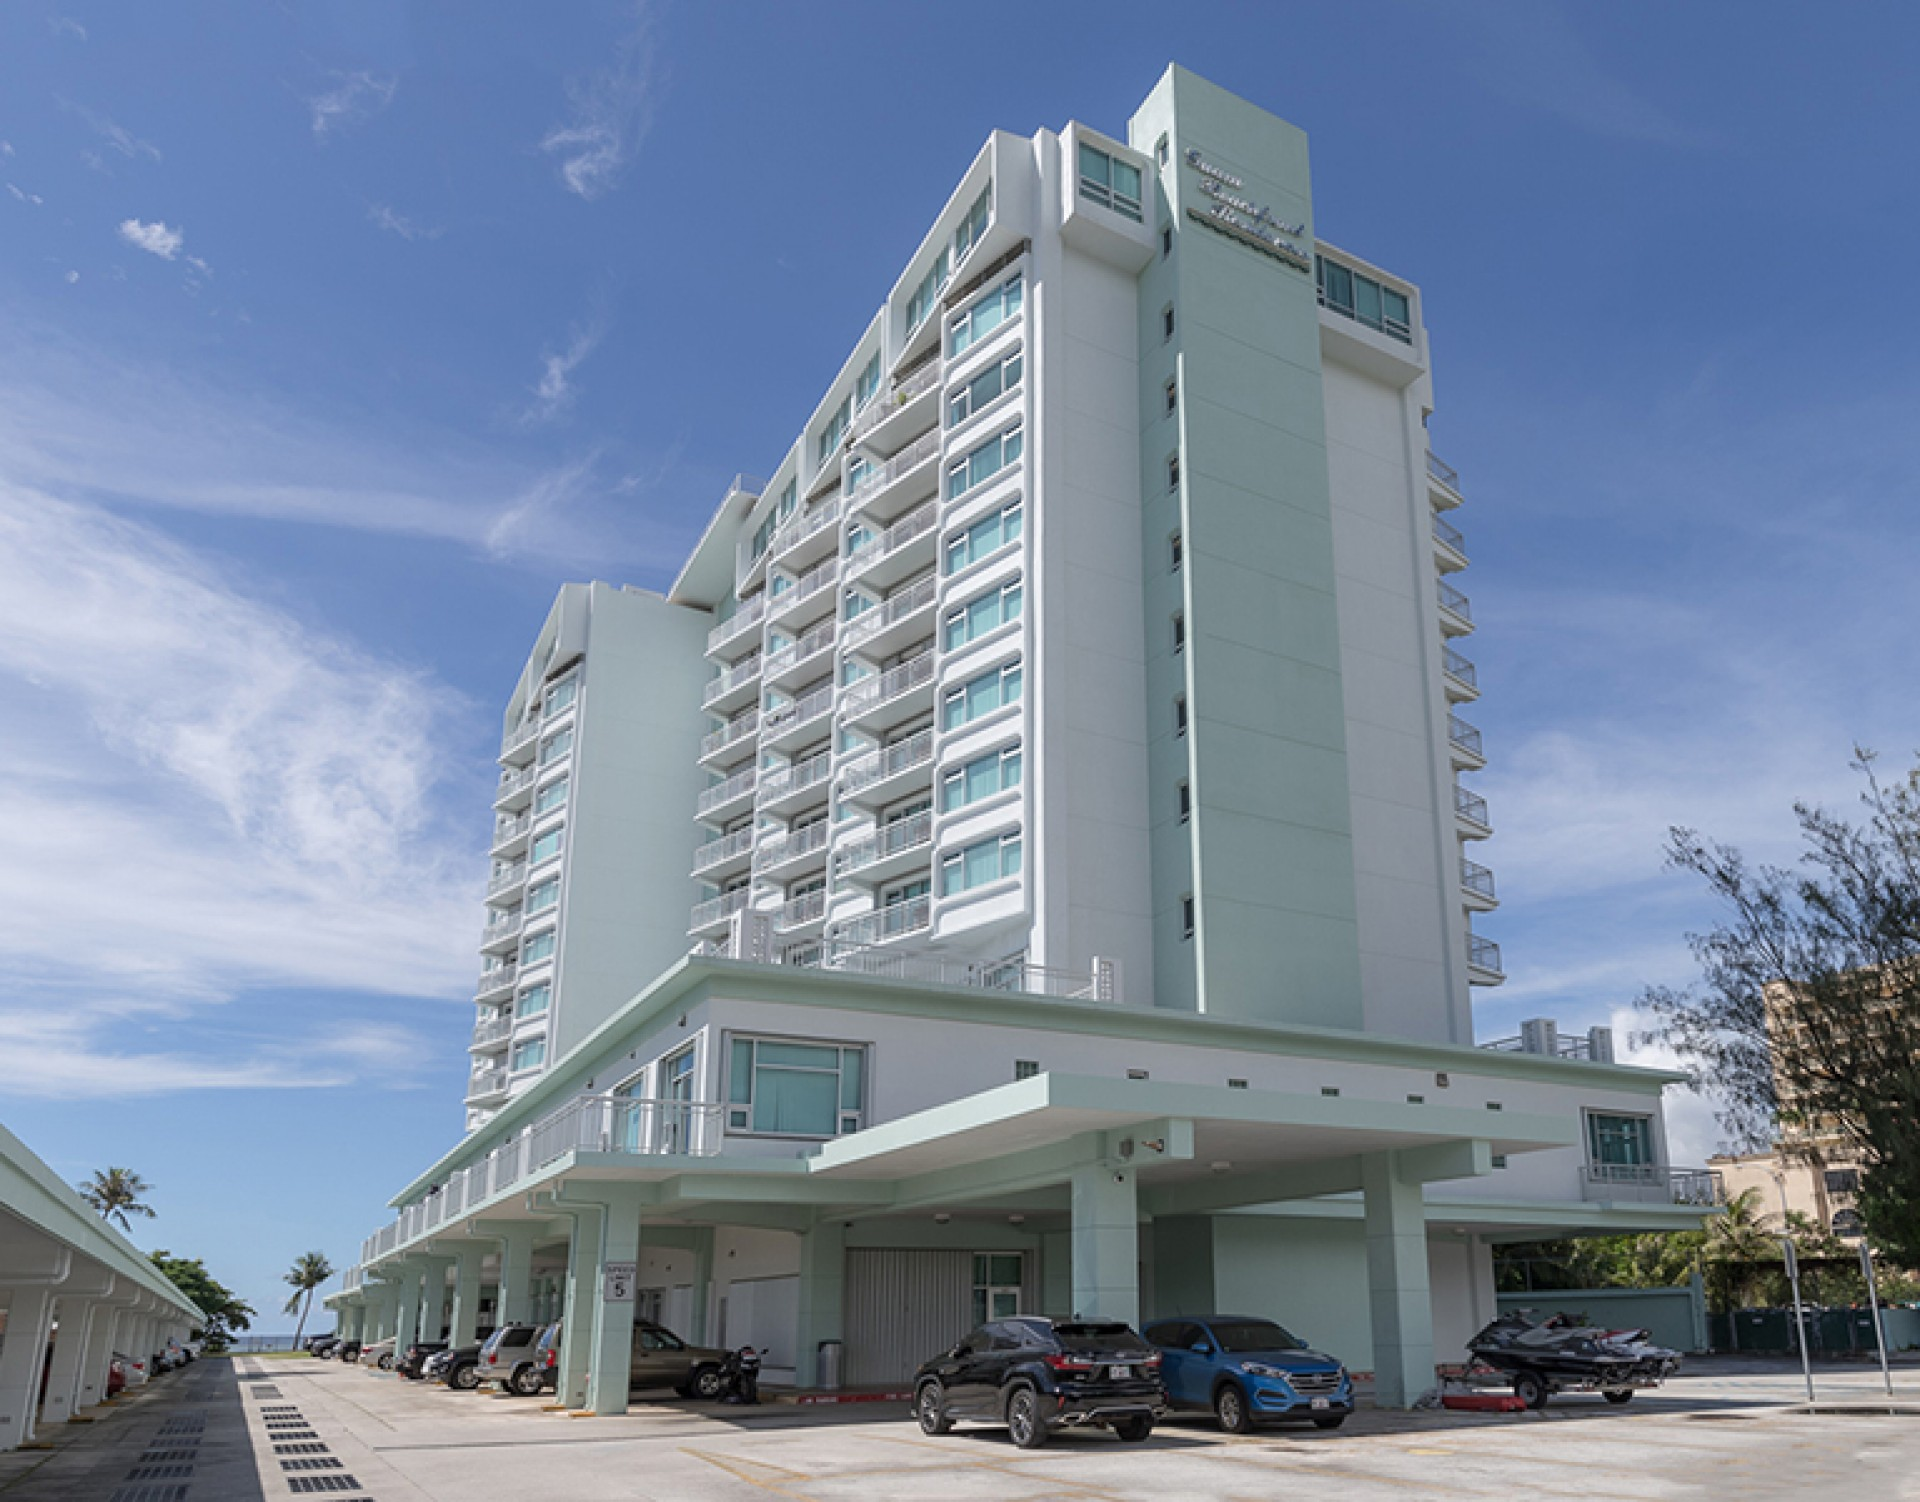 Military Vehicles For Sale >> Guam Beachfront Residences | Featured Properties | Guam ...